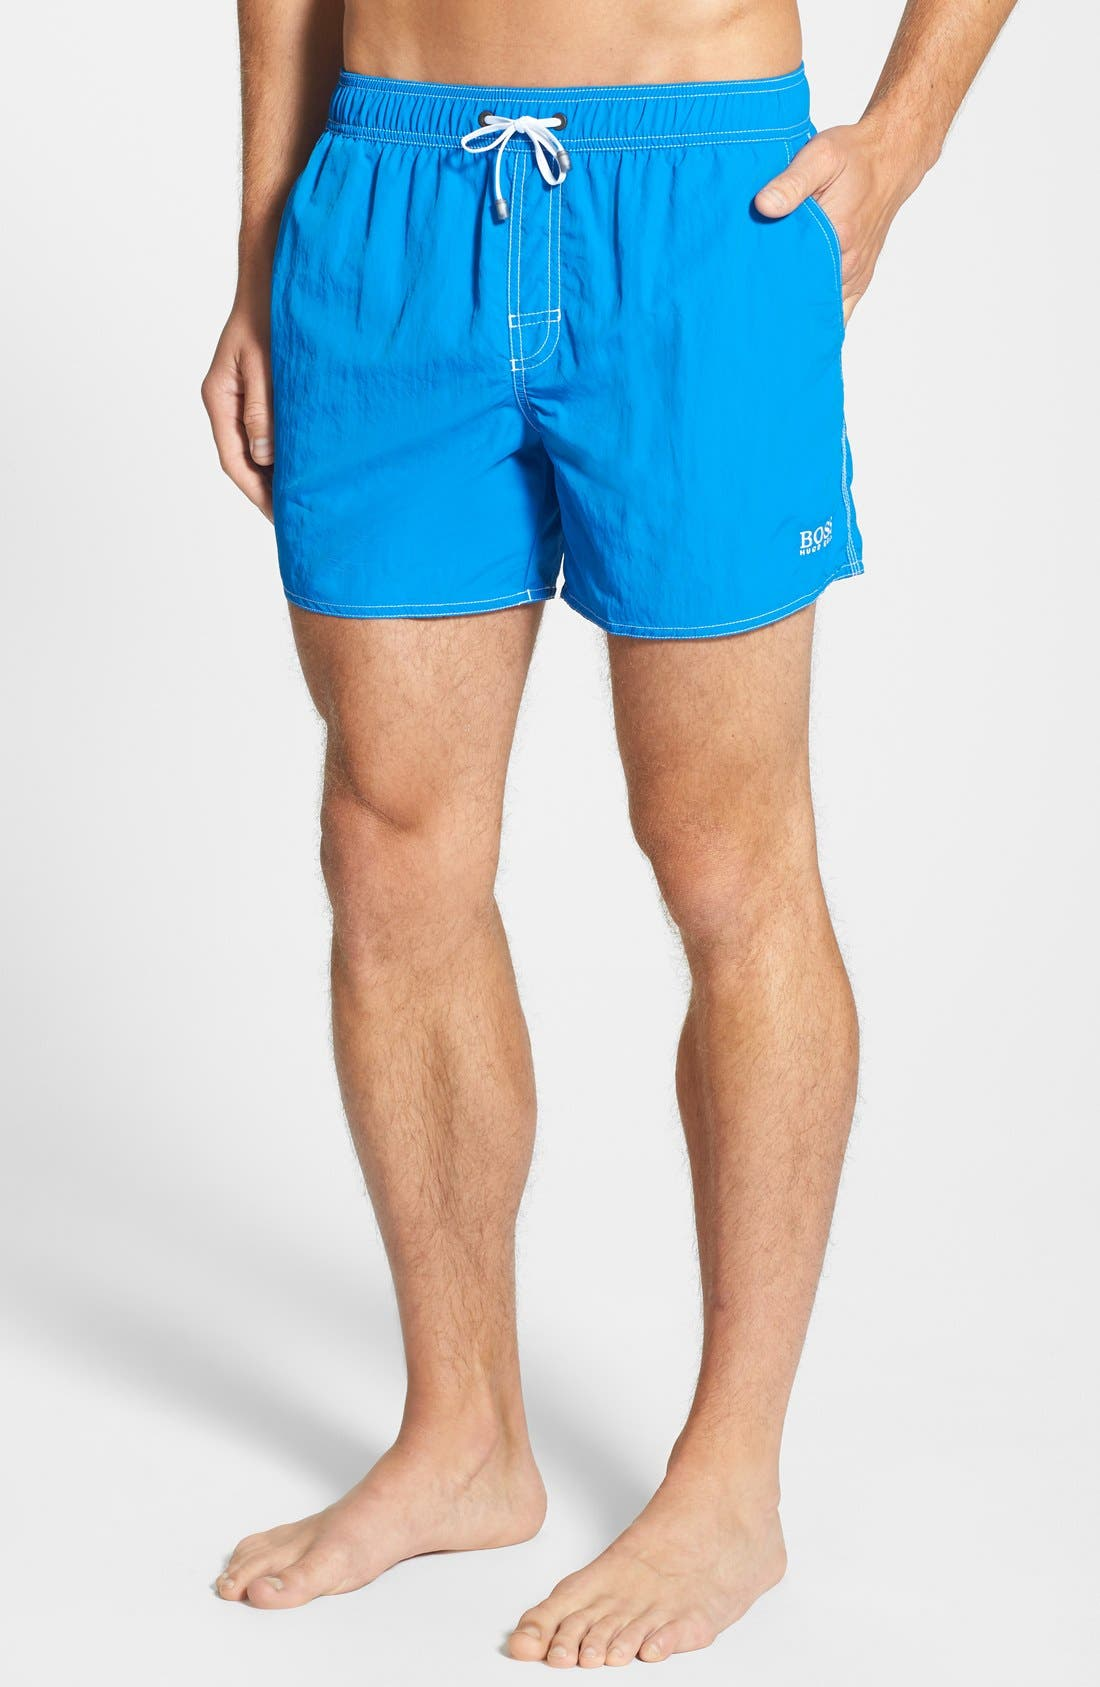 Alternate Image 1 Selected - BOSS 'Lobster' Volley Swim Shorts (Men)